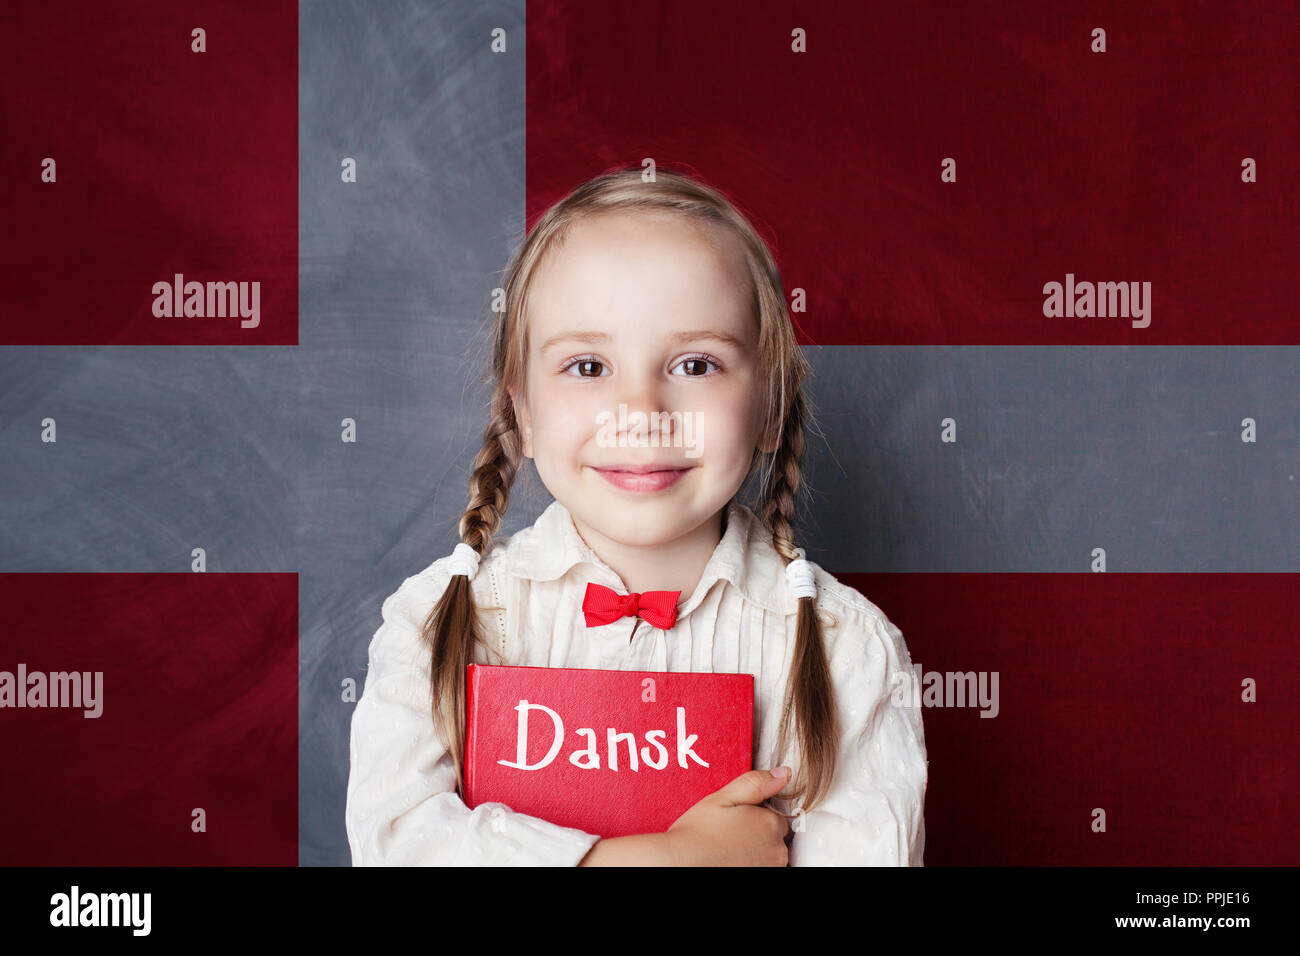 Danish concept. Child girl student with book against the Danish flag background. Learn language - Stock Image